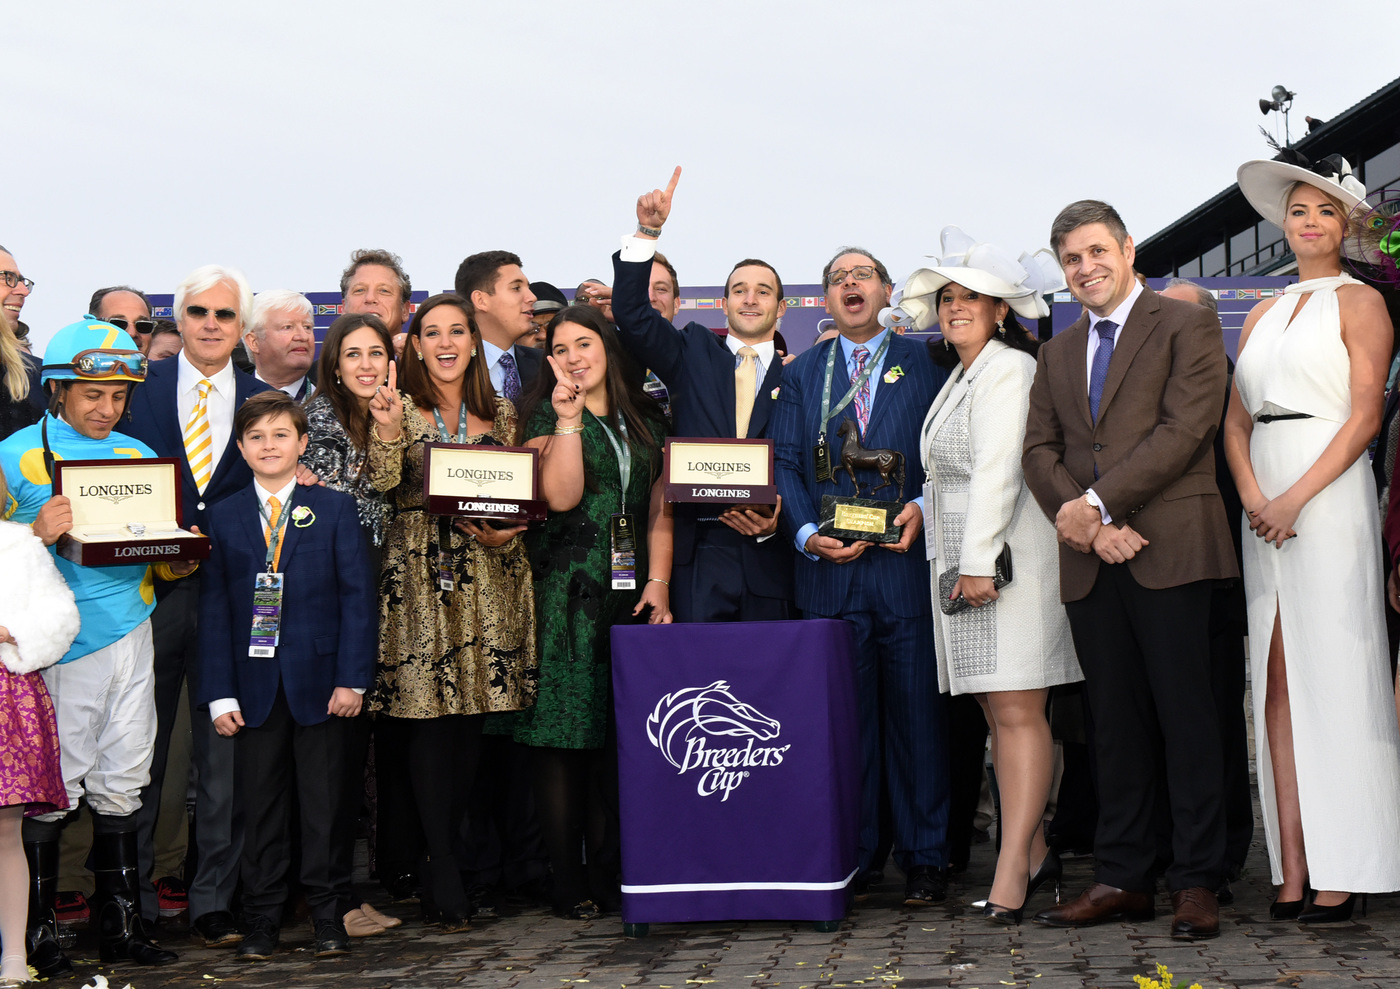 Longines Flat Racing Event: Longines times American Pharoah's historic victory in Breeders' Cup Classic 2